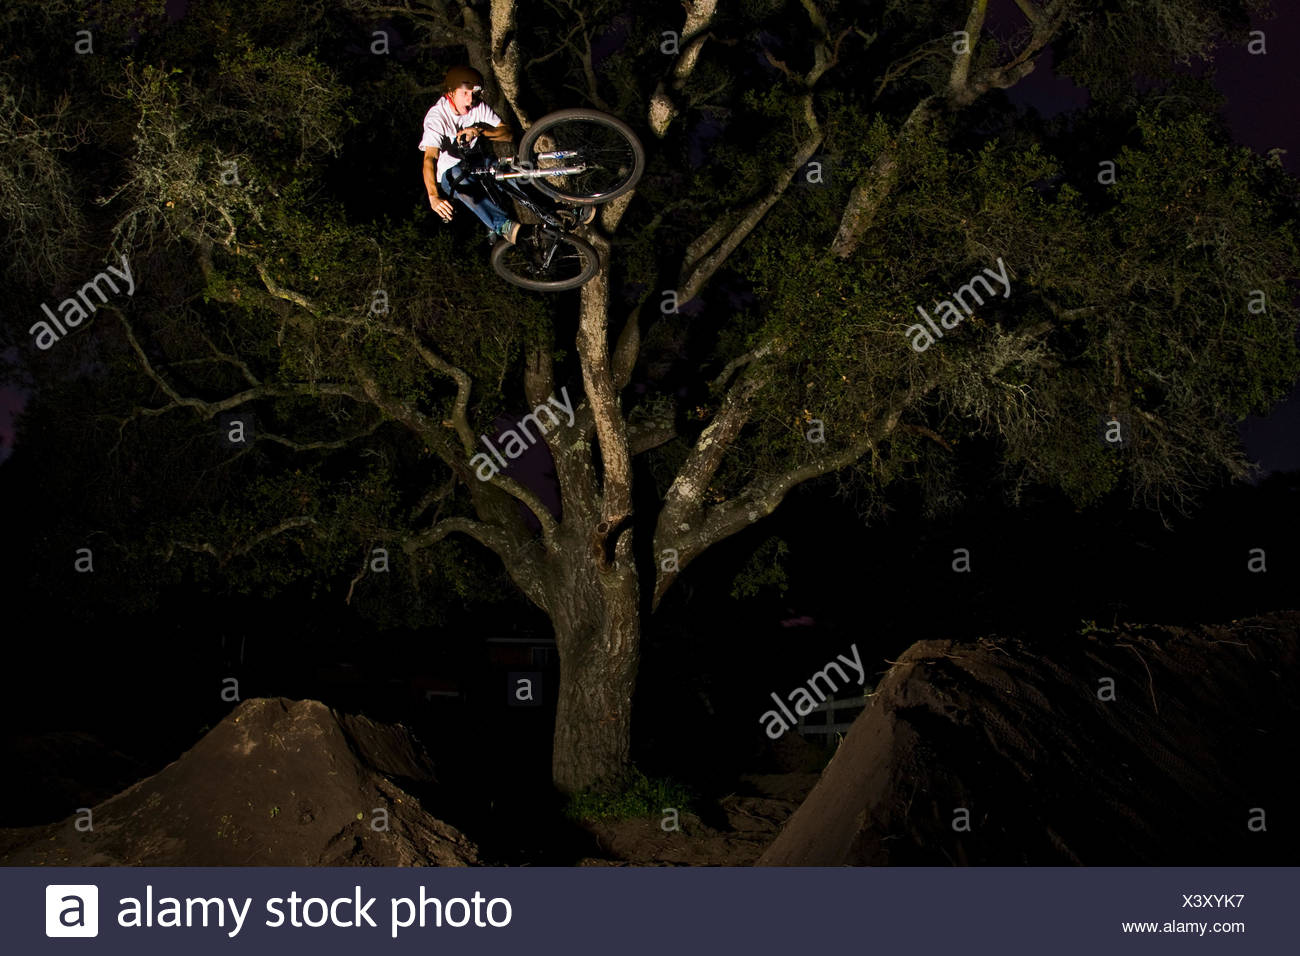 Jacob Hyde rides the jumps he built in his back yard just outside Santa Cruz, CA. Jan 14th 2009 - Stock Image